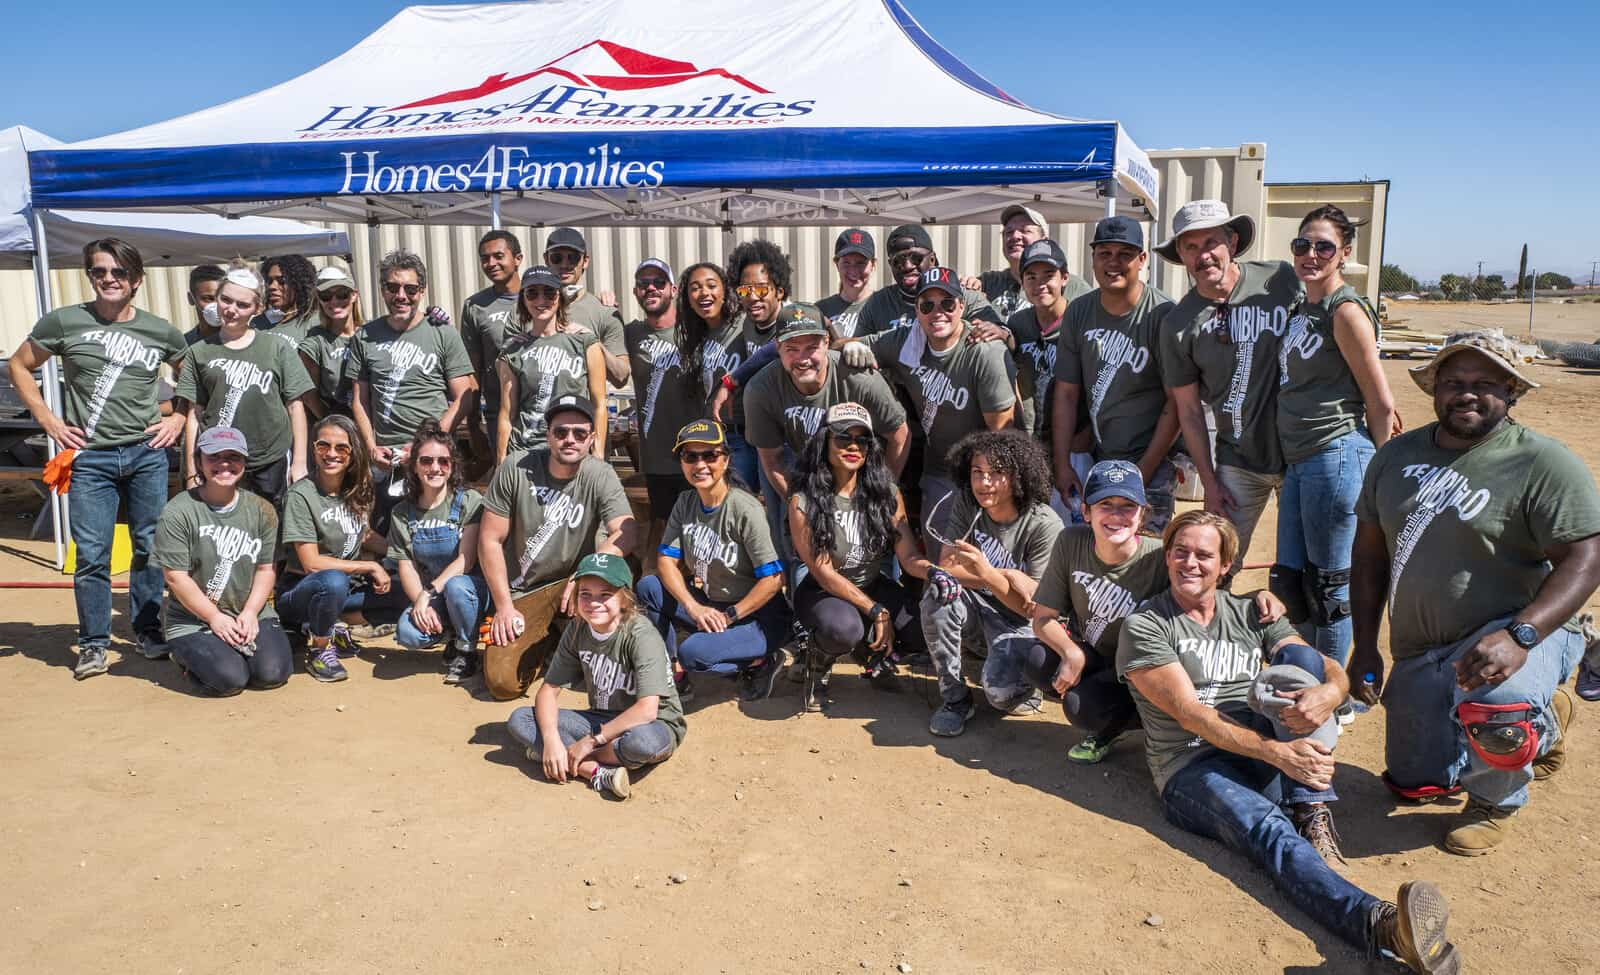 Celebrities Build Homes for Veterans with Homes 4 Families